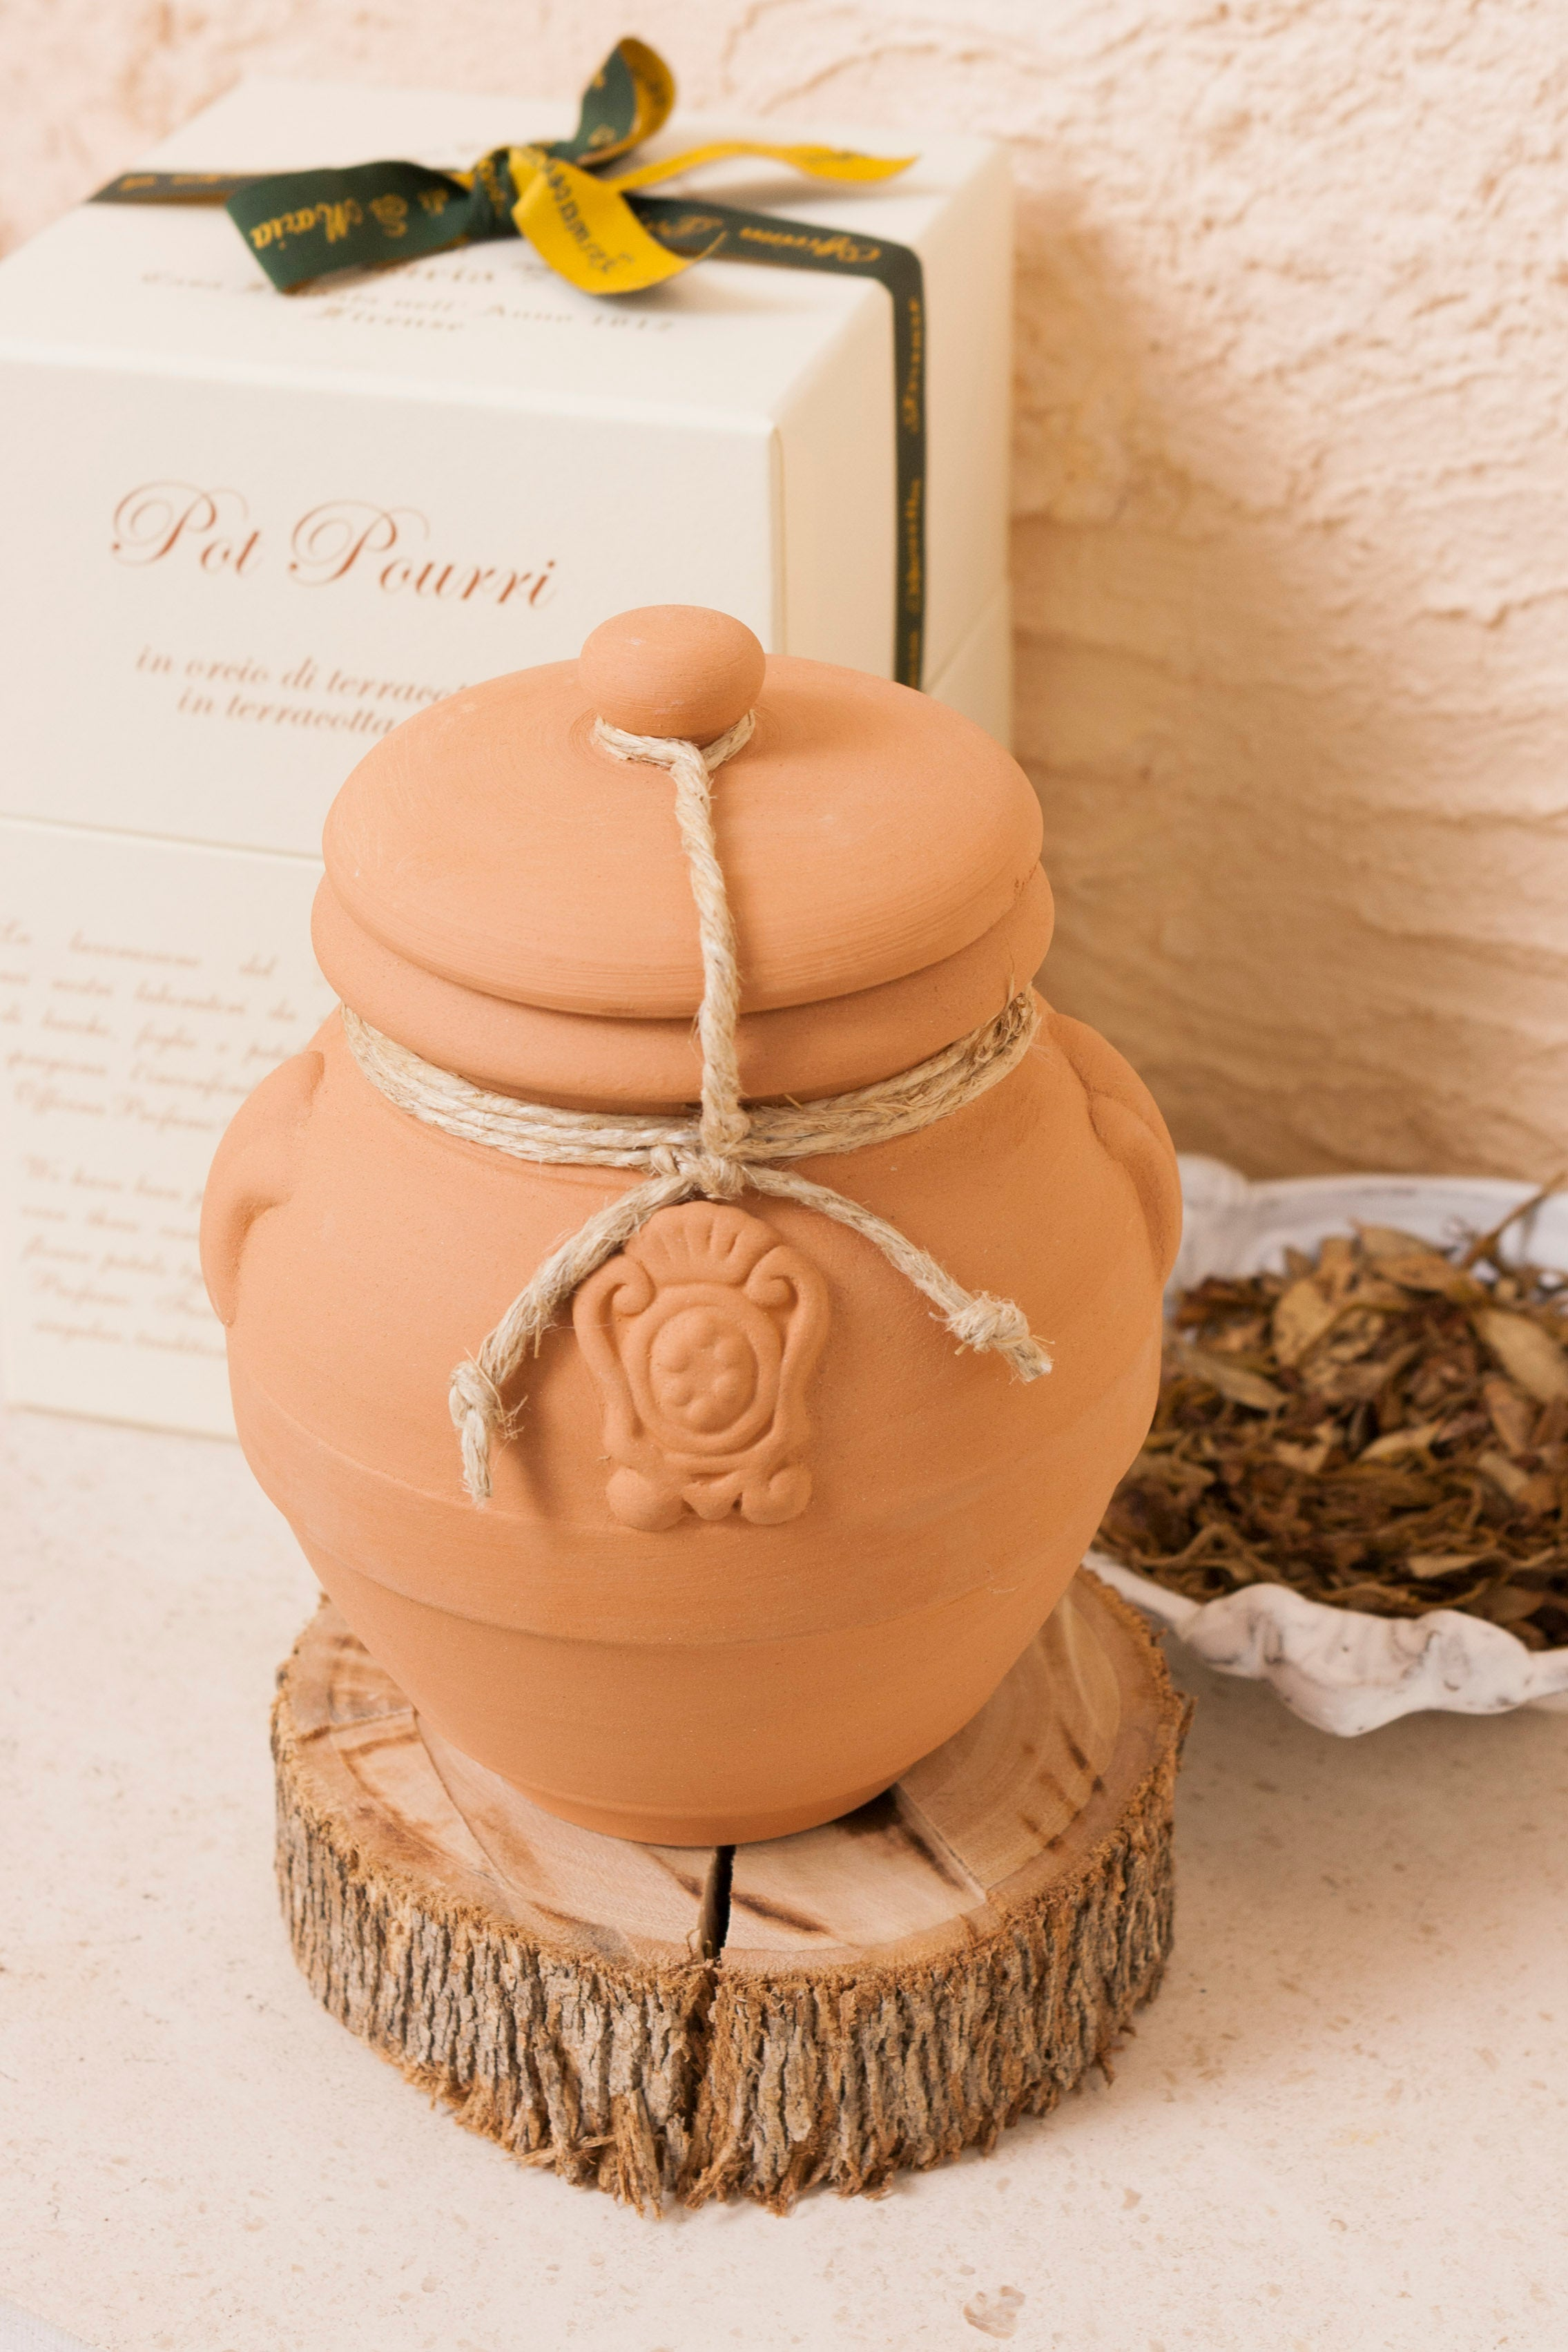 Pot Pourri in Terracotta